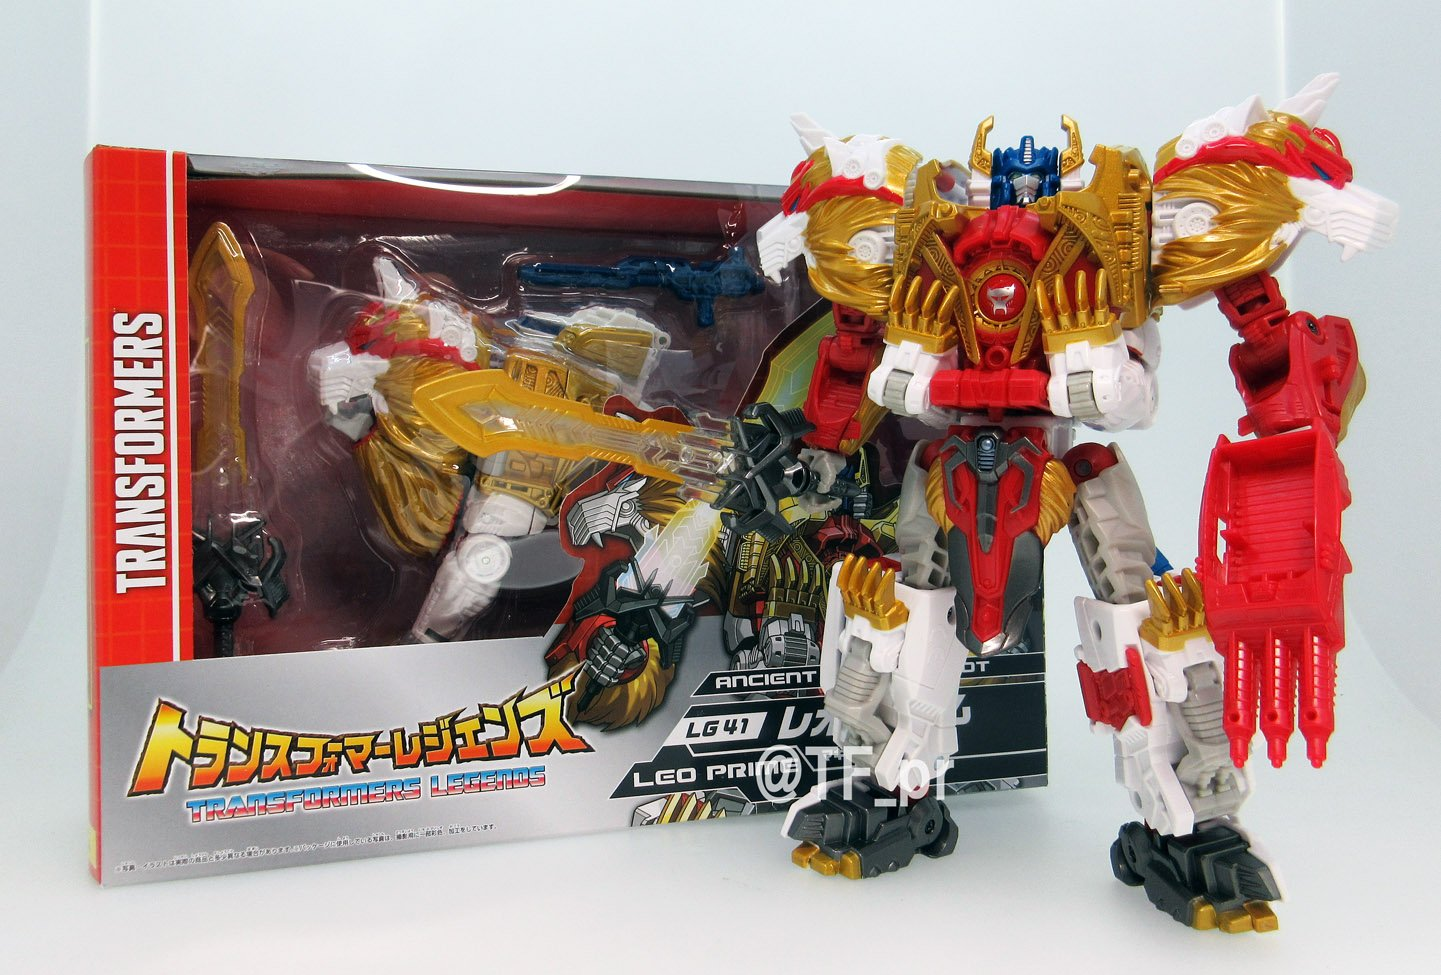 Takara-Tomy Transformers Legends LG-41 Lio Convoy – New Official Images